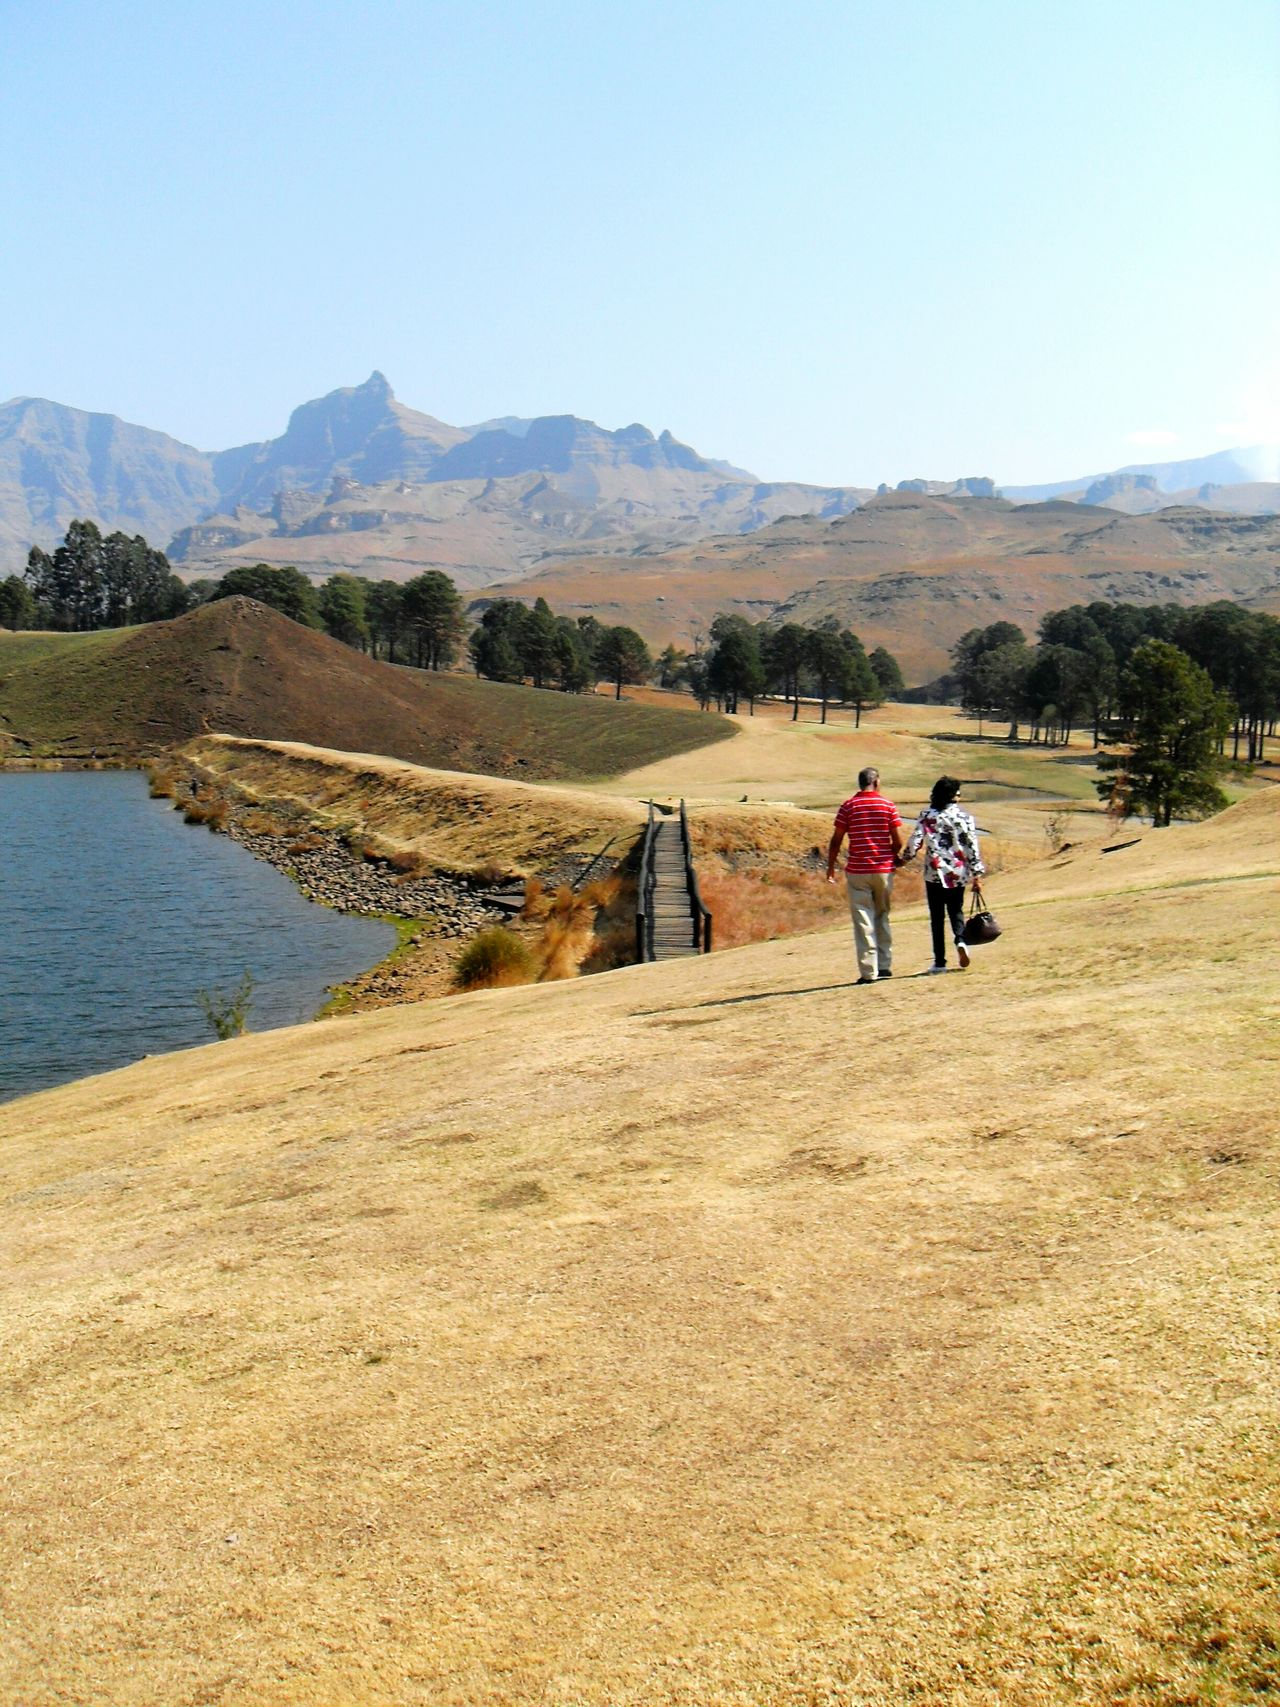 My Parents exploring the Drankensburg Mountains on our family vacation Family Mountain Vacation South Africa Drakensburg Drakensburg Mountains, South Africa, Mountain The Following